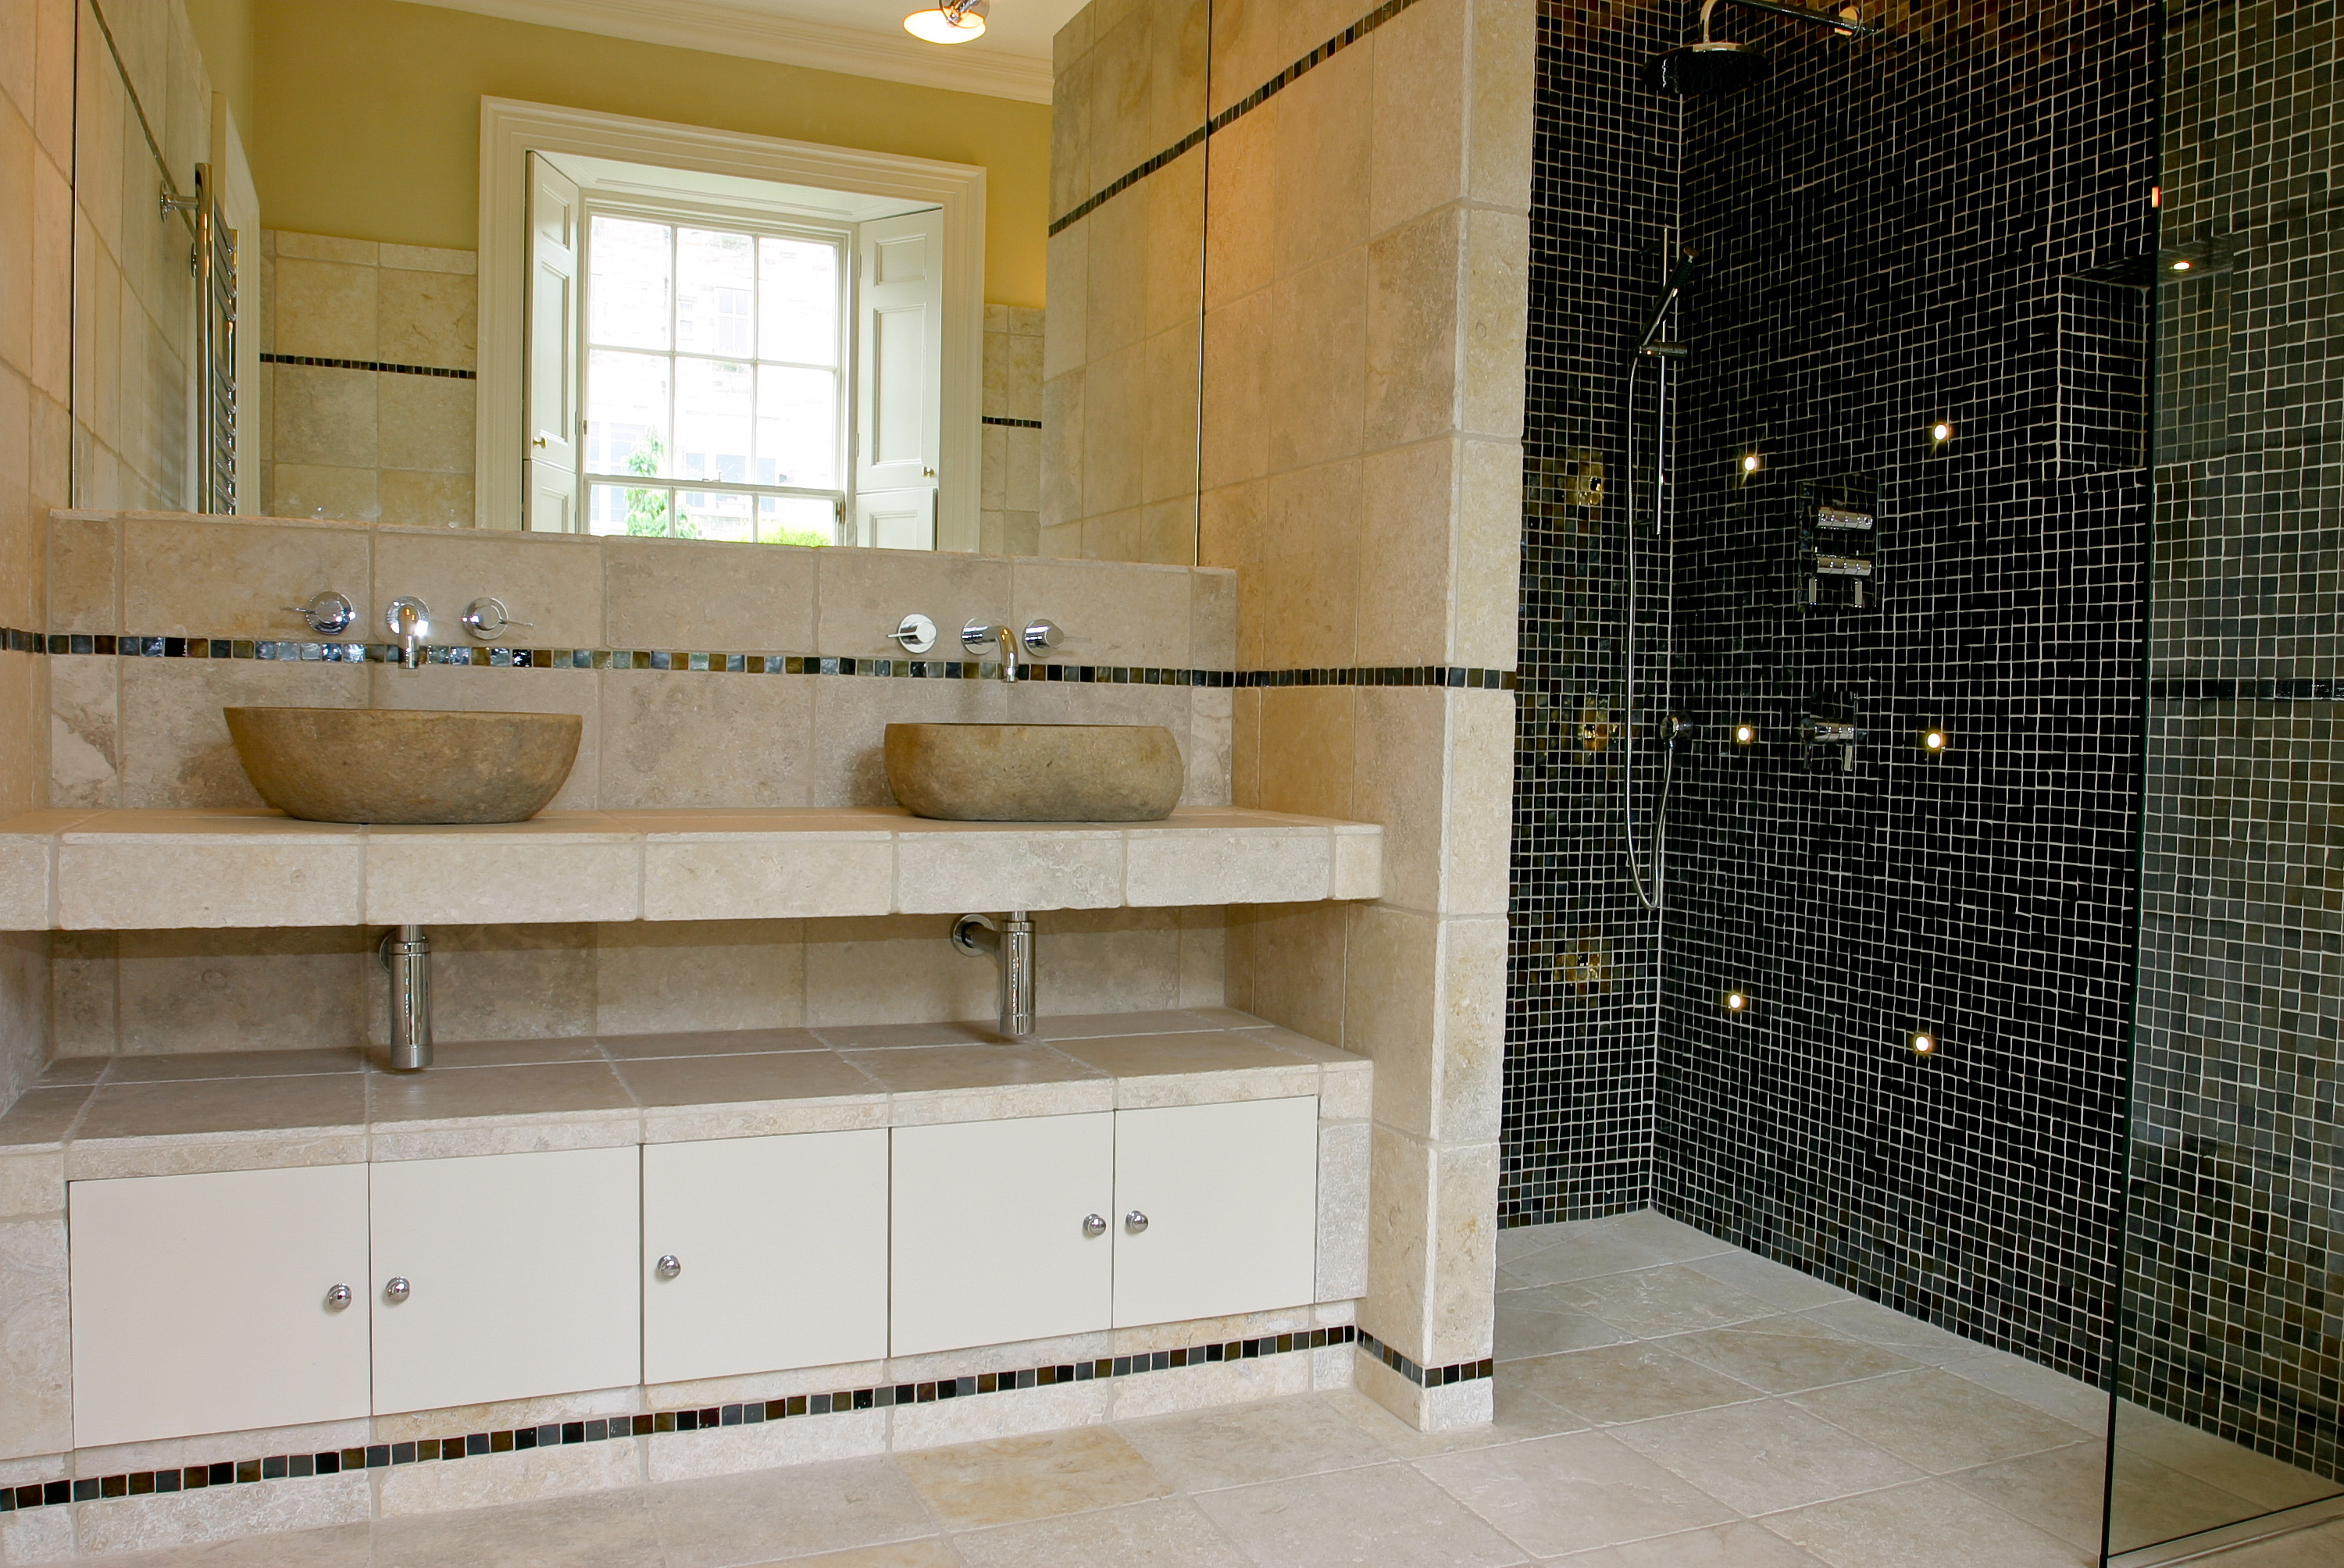 Bespoke Bathroom Double vanity unit with two solid stone sinks